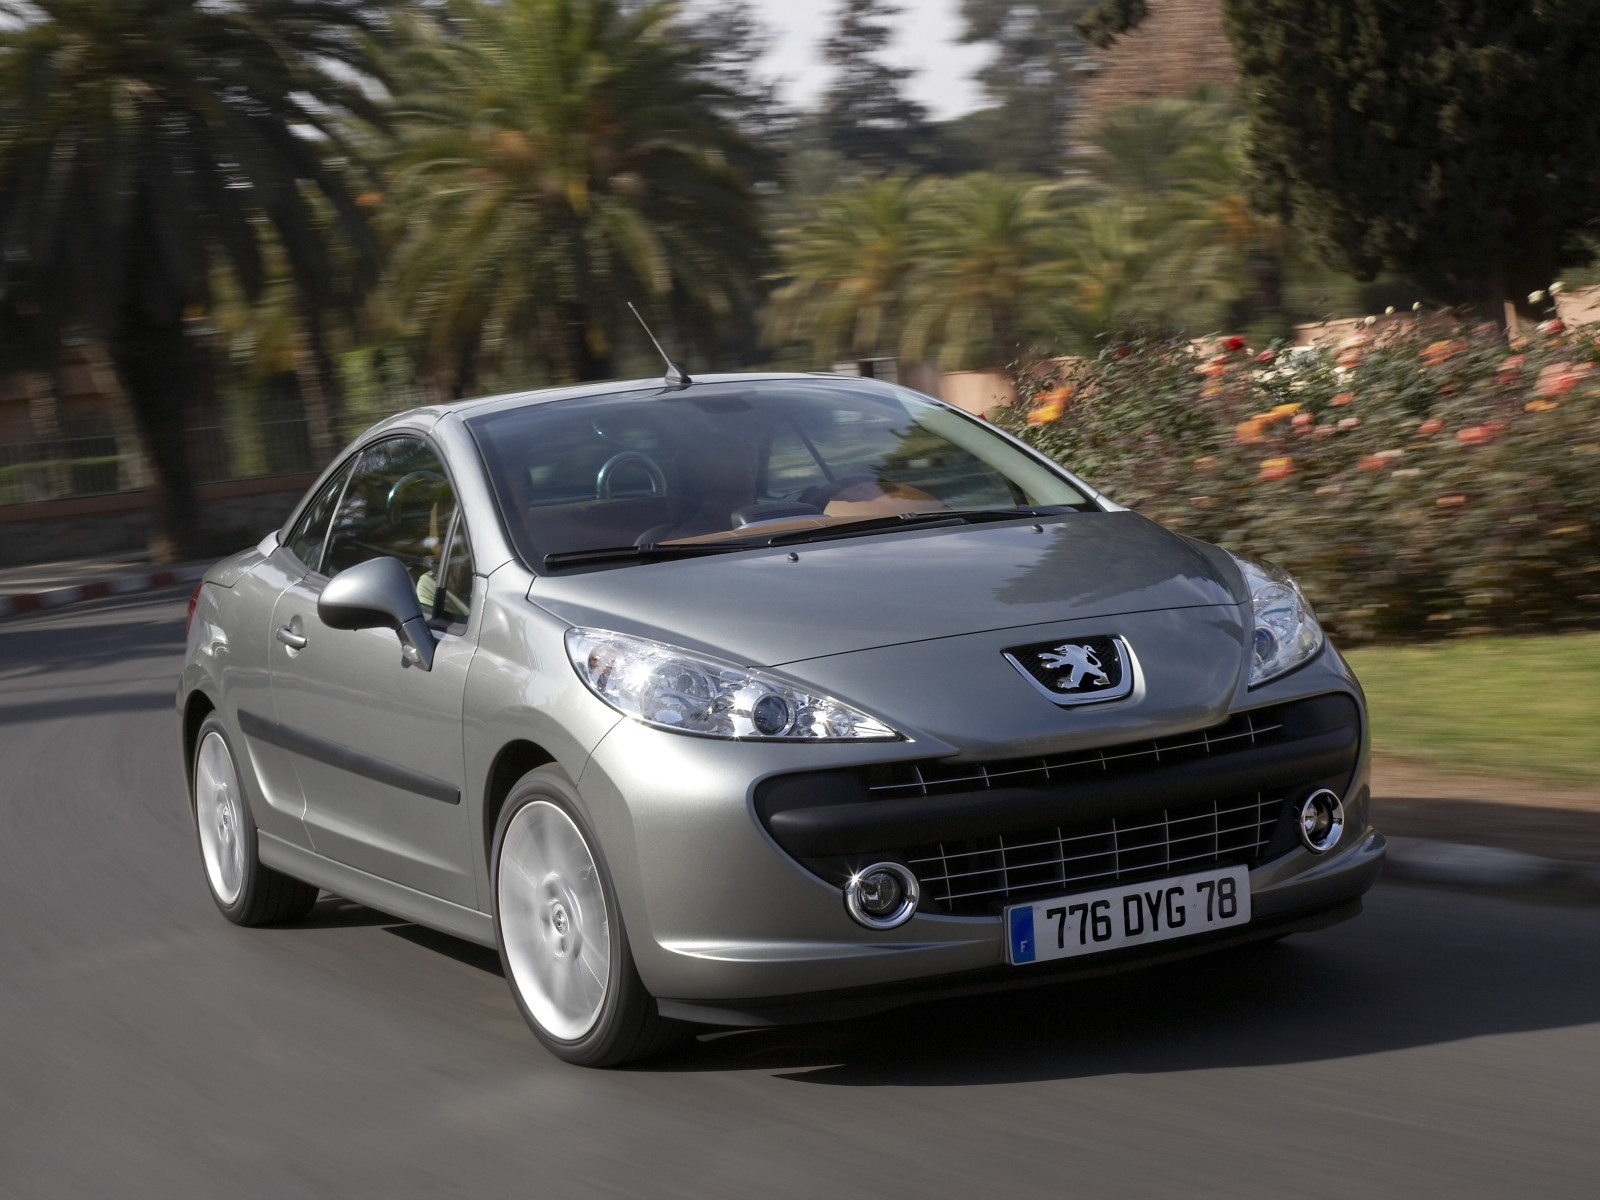 2008 peugeot 207 cc pictures specifications interiors and. Black Bedroom Furniture Sets. Home Design Ideas